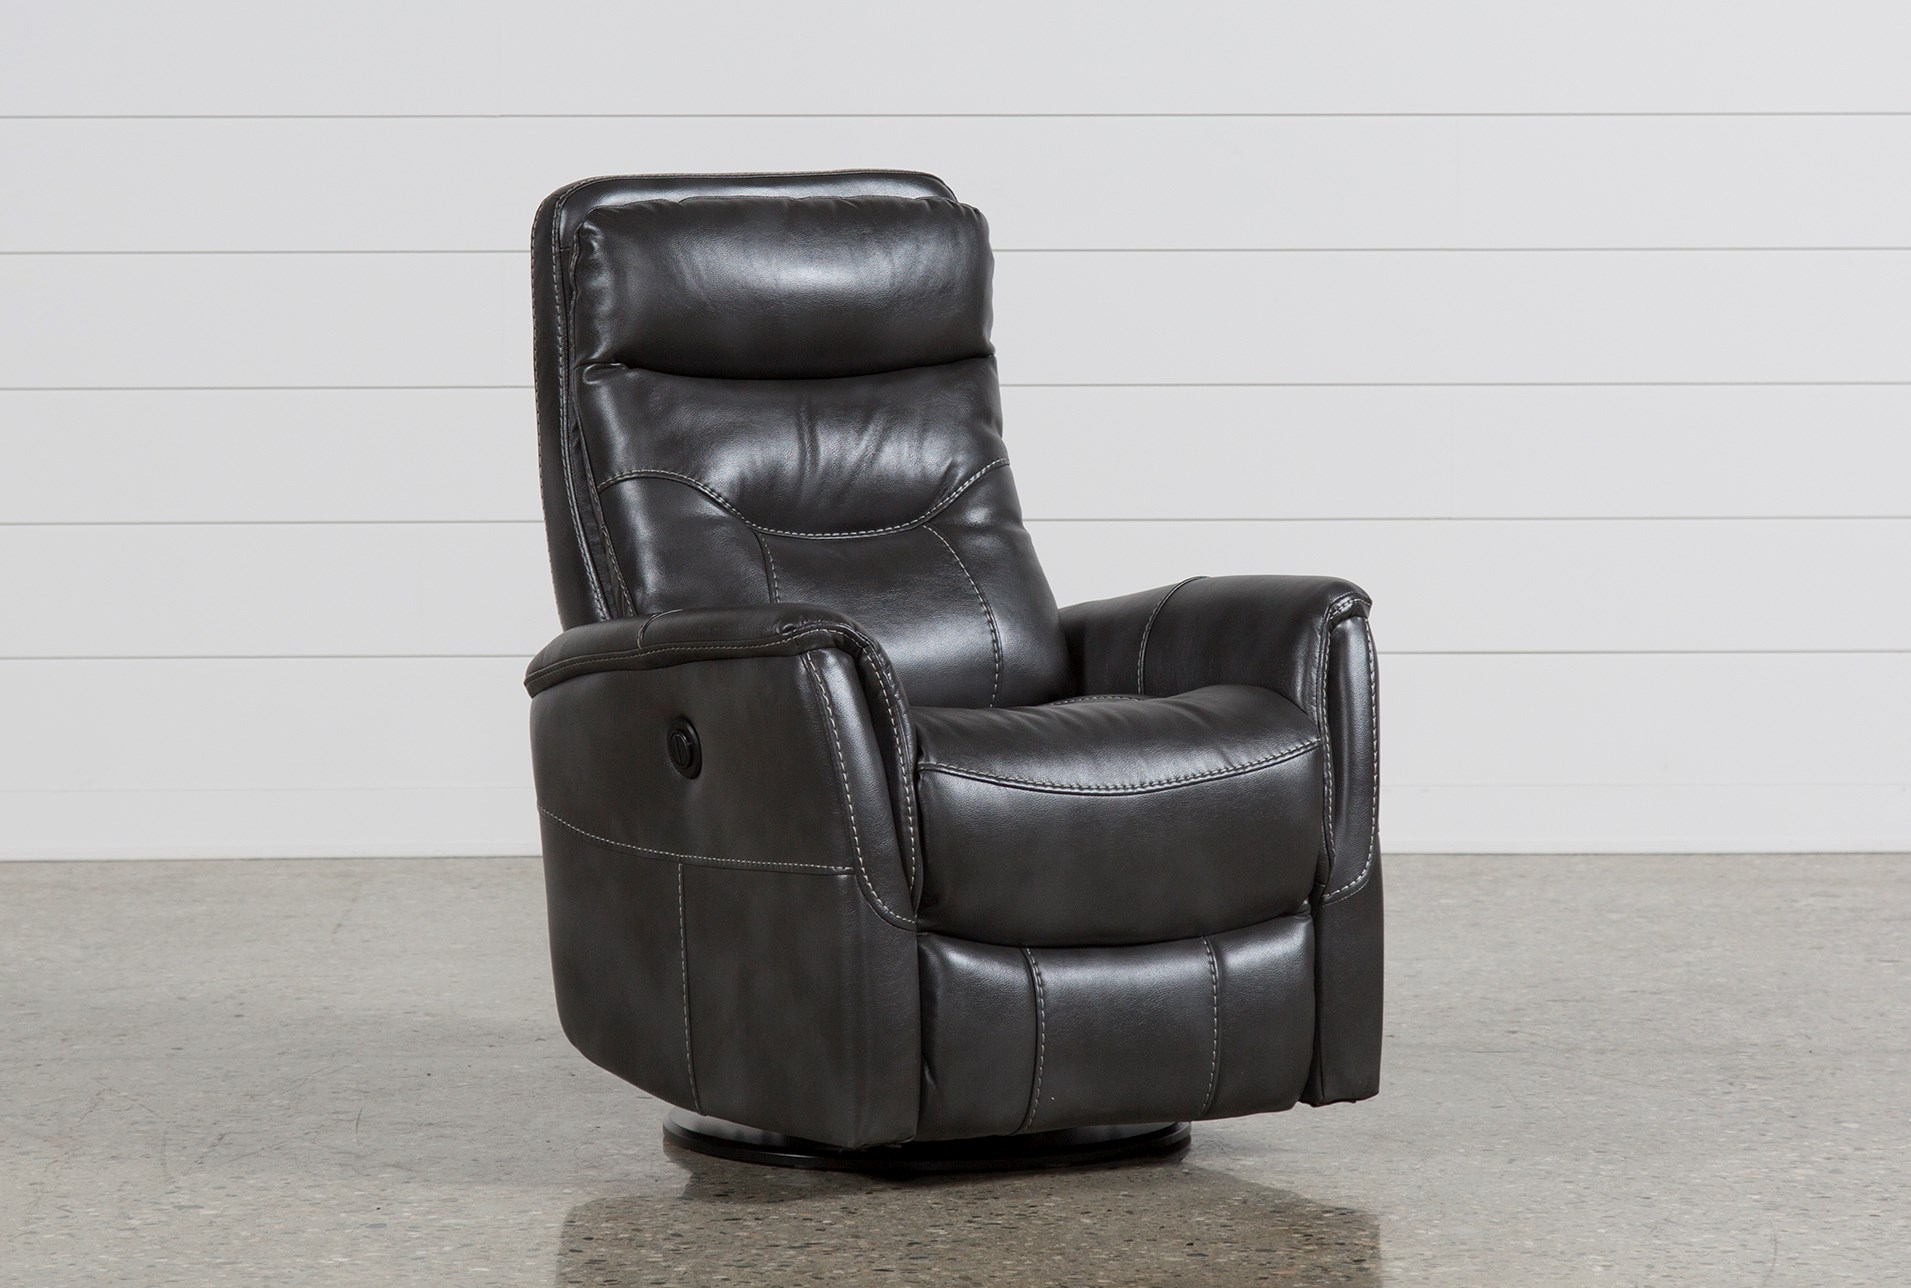 snuggle by everston glider nursery recliner rocker swivel monbebe nestled products bugz